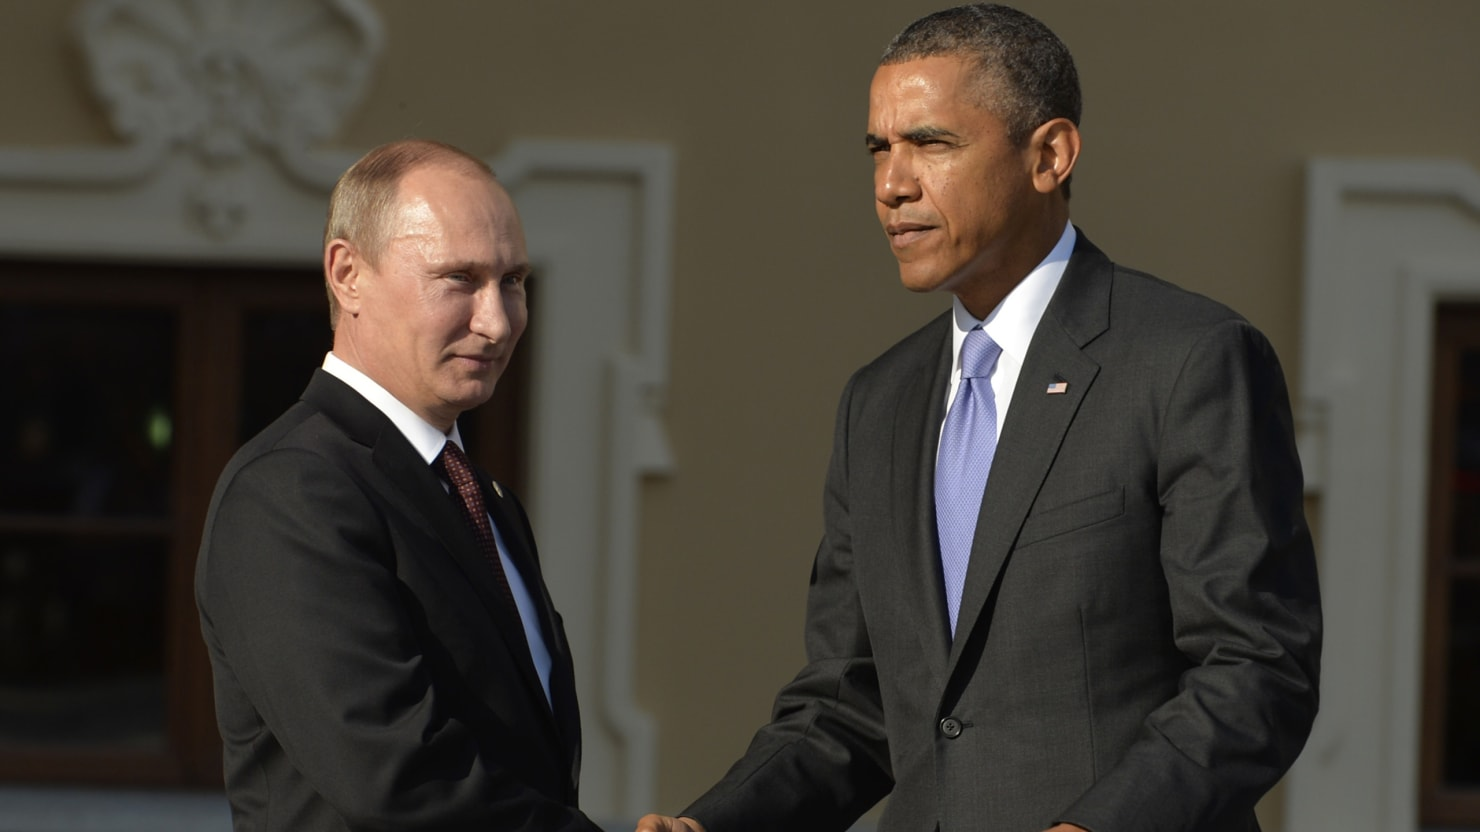 Up to Speed: 4 Things You Need to Know About the U.S.-Russia Agreement